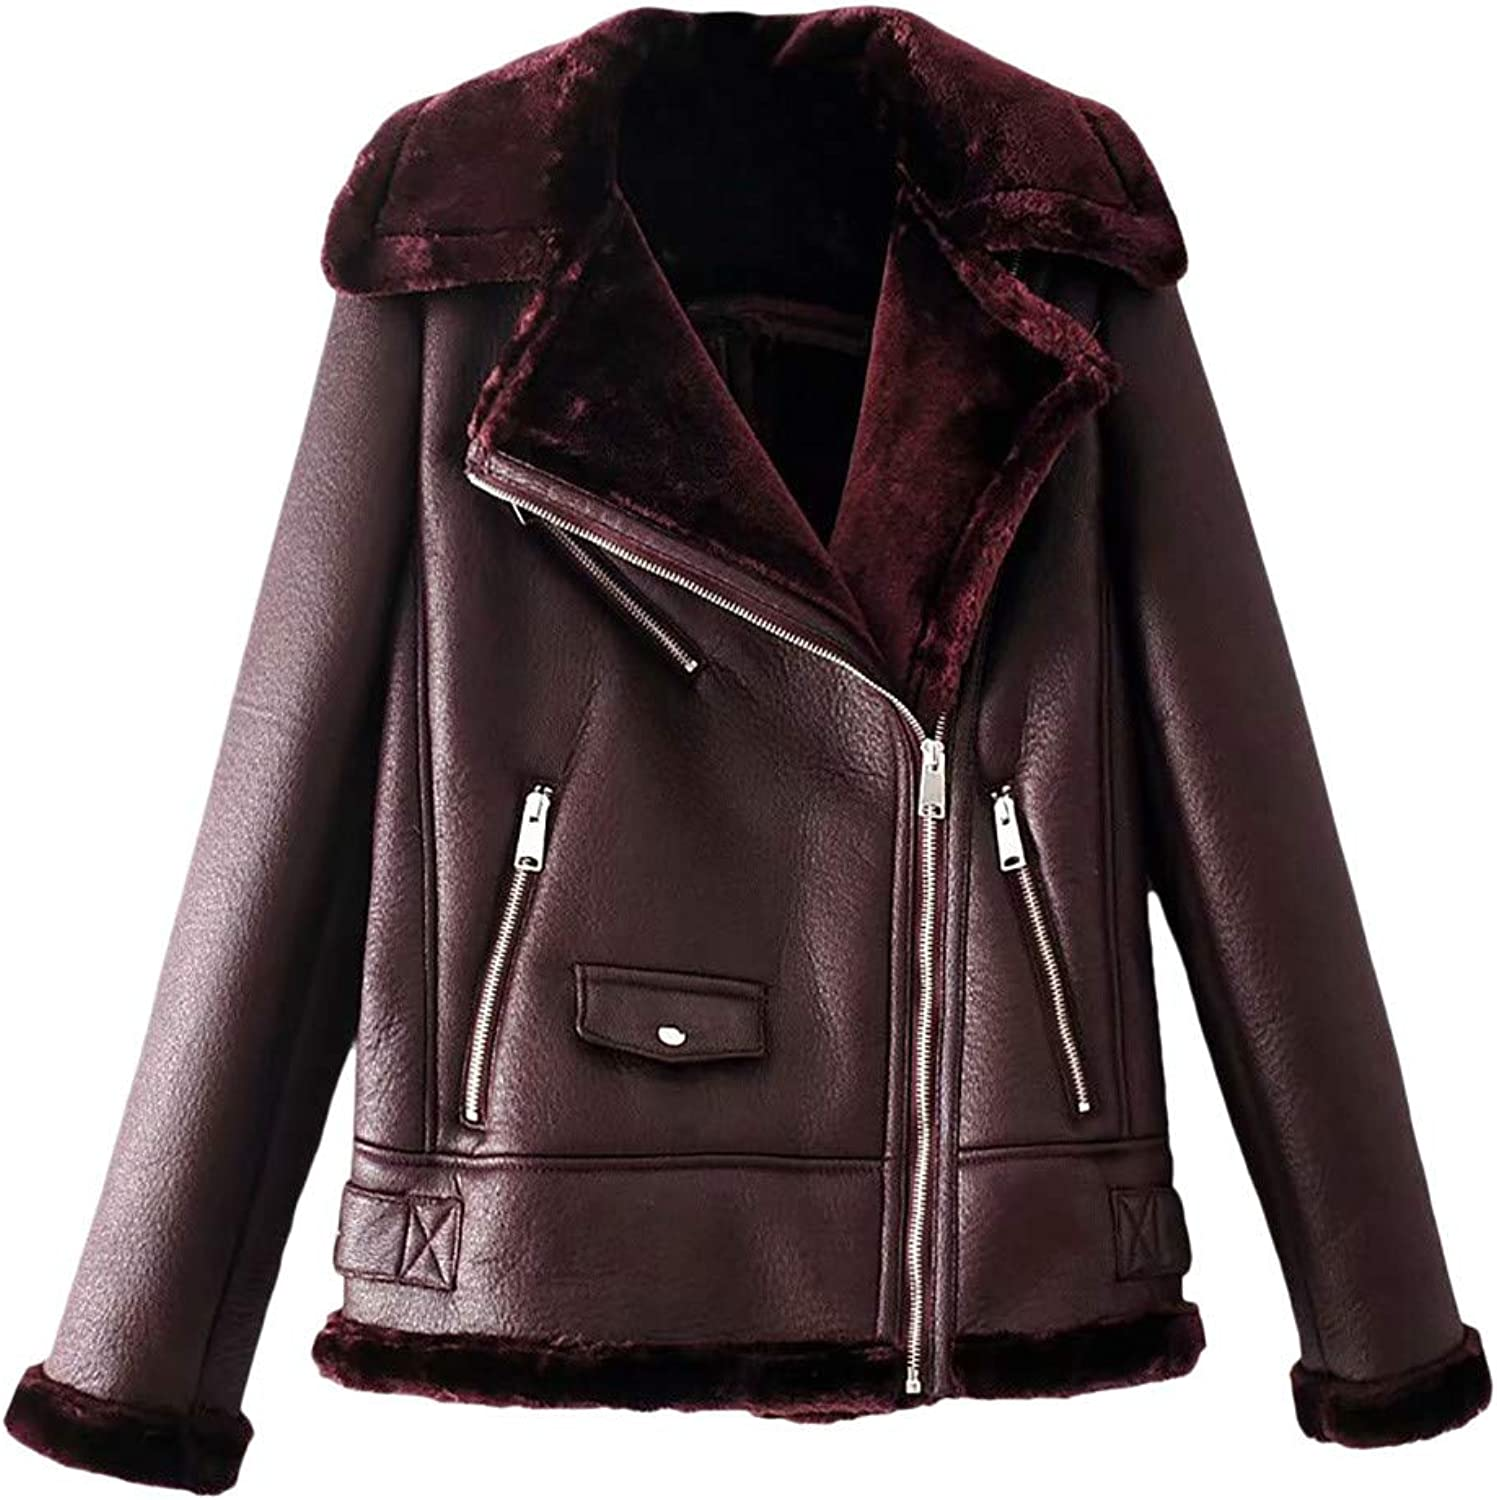 Kingfansion Women Womans Winter Jacket Winter Overcoat Outwear Coat Cardigan Parka Trench